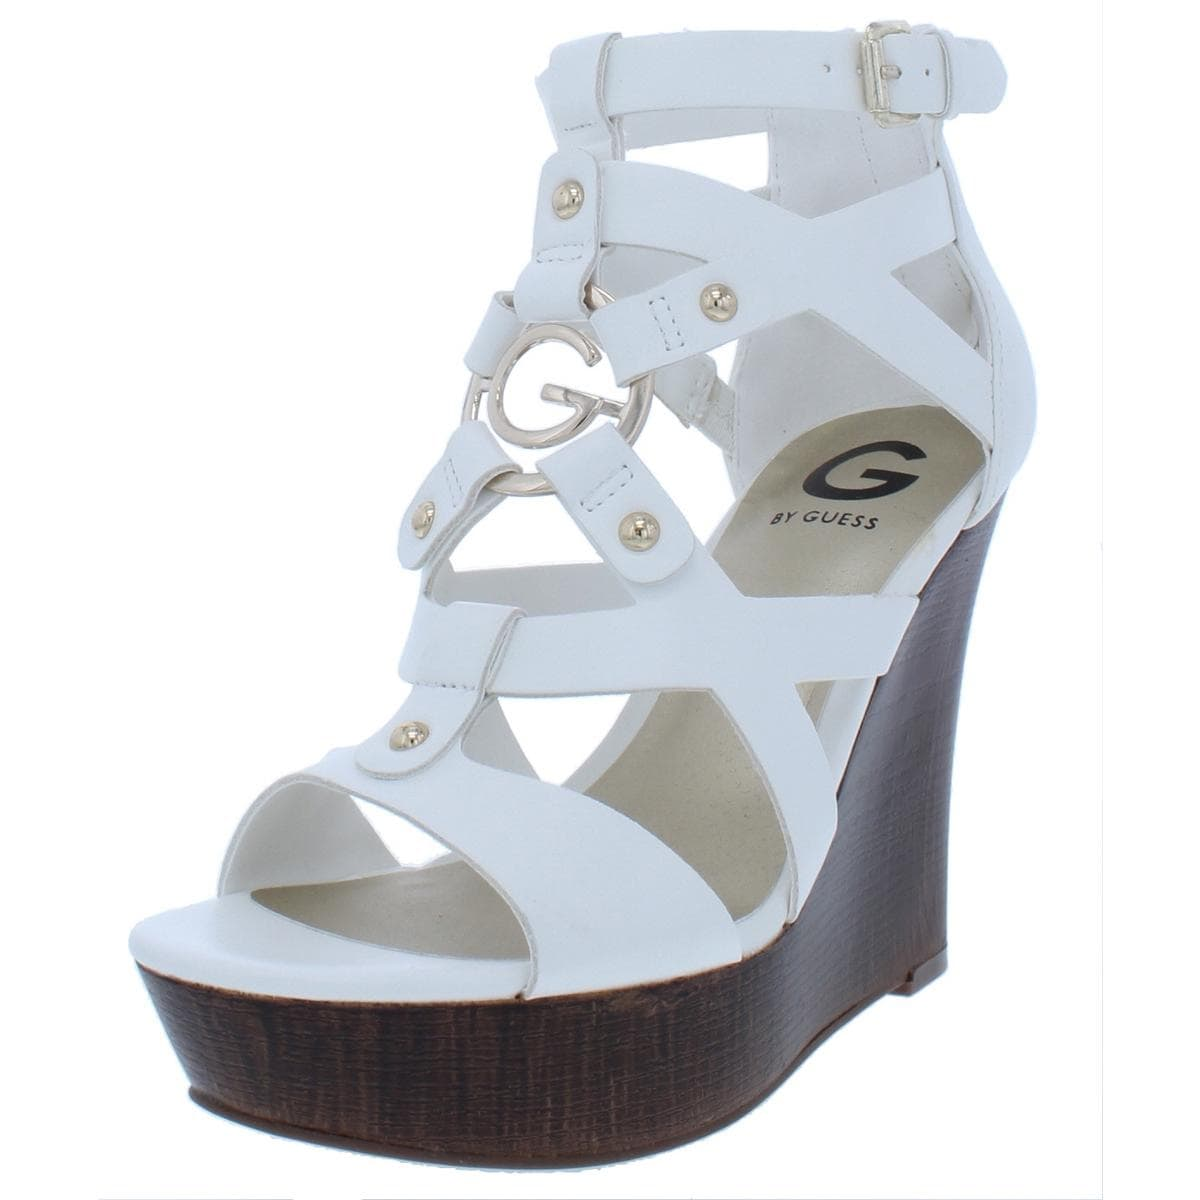 c0f3f4d6e47 Shop G by Guess Womens Dodge Wedge Sandals Embellished Faux Leather - Free  Shipping On Orders Over  45 - Overstock - 25587286